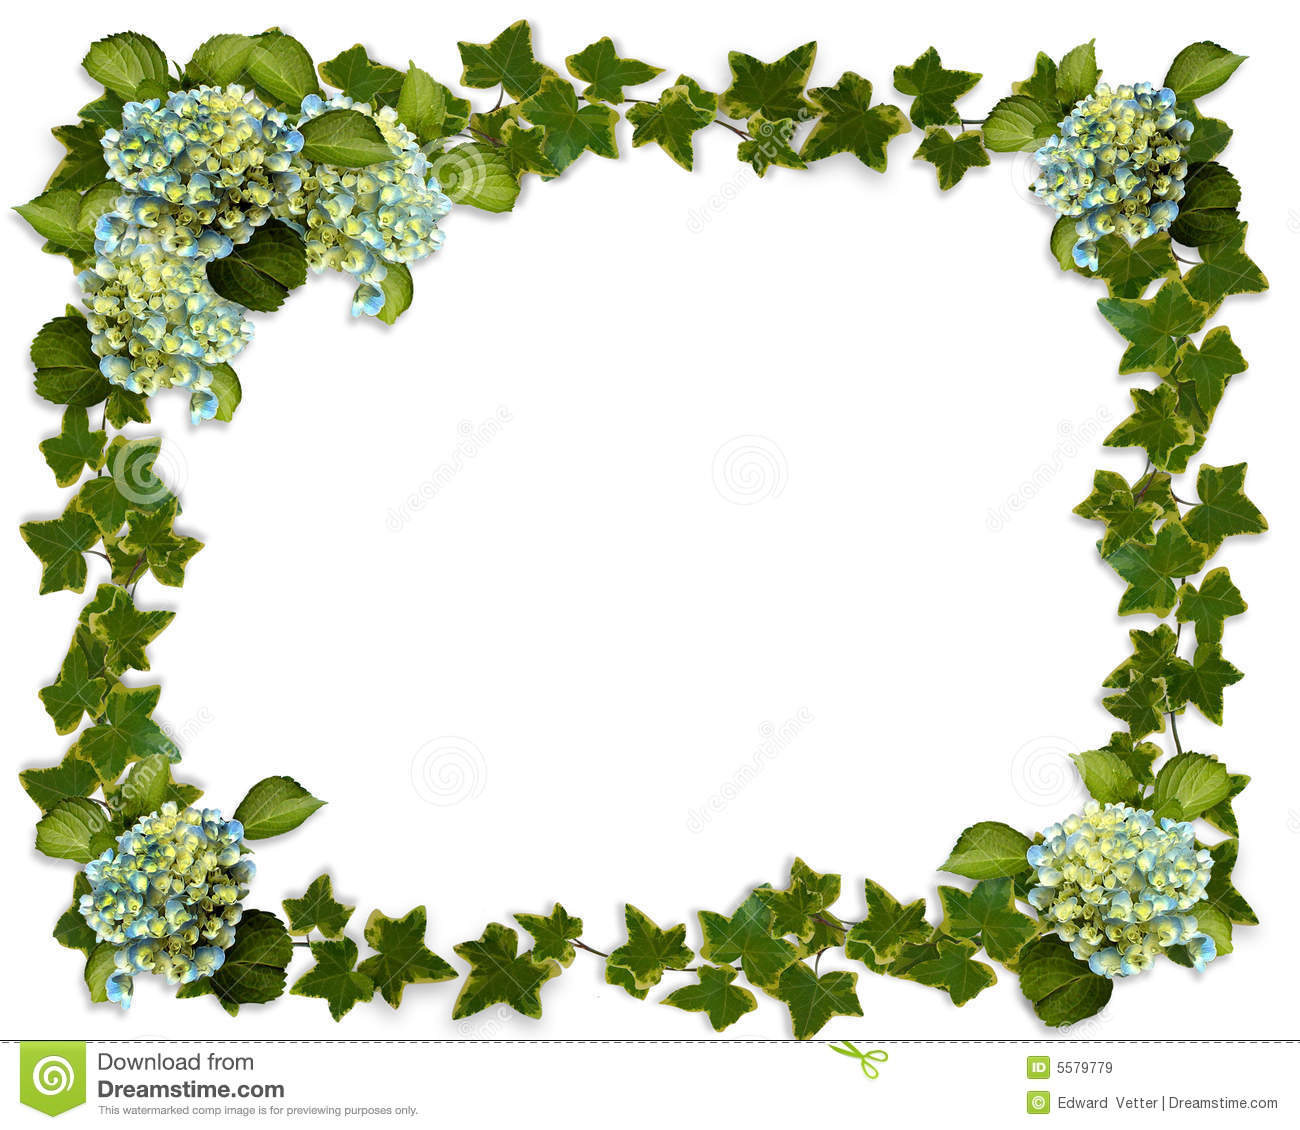 Ivy Border With Hydrangea Flowers Stock Illustration